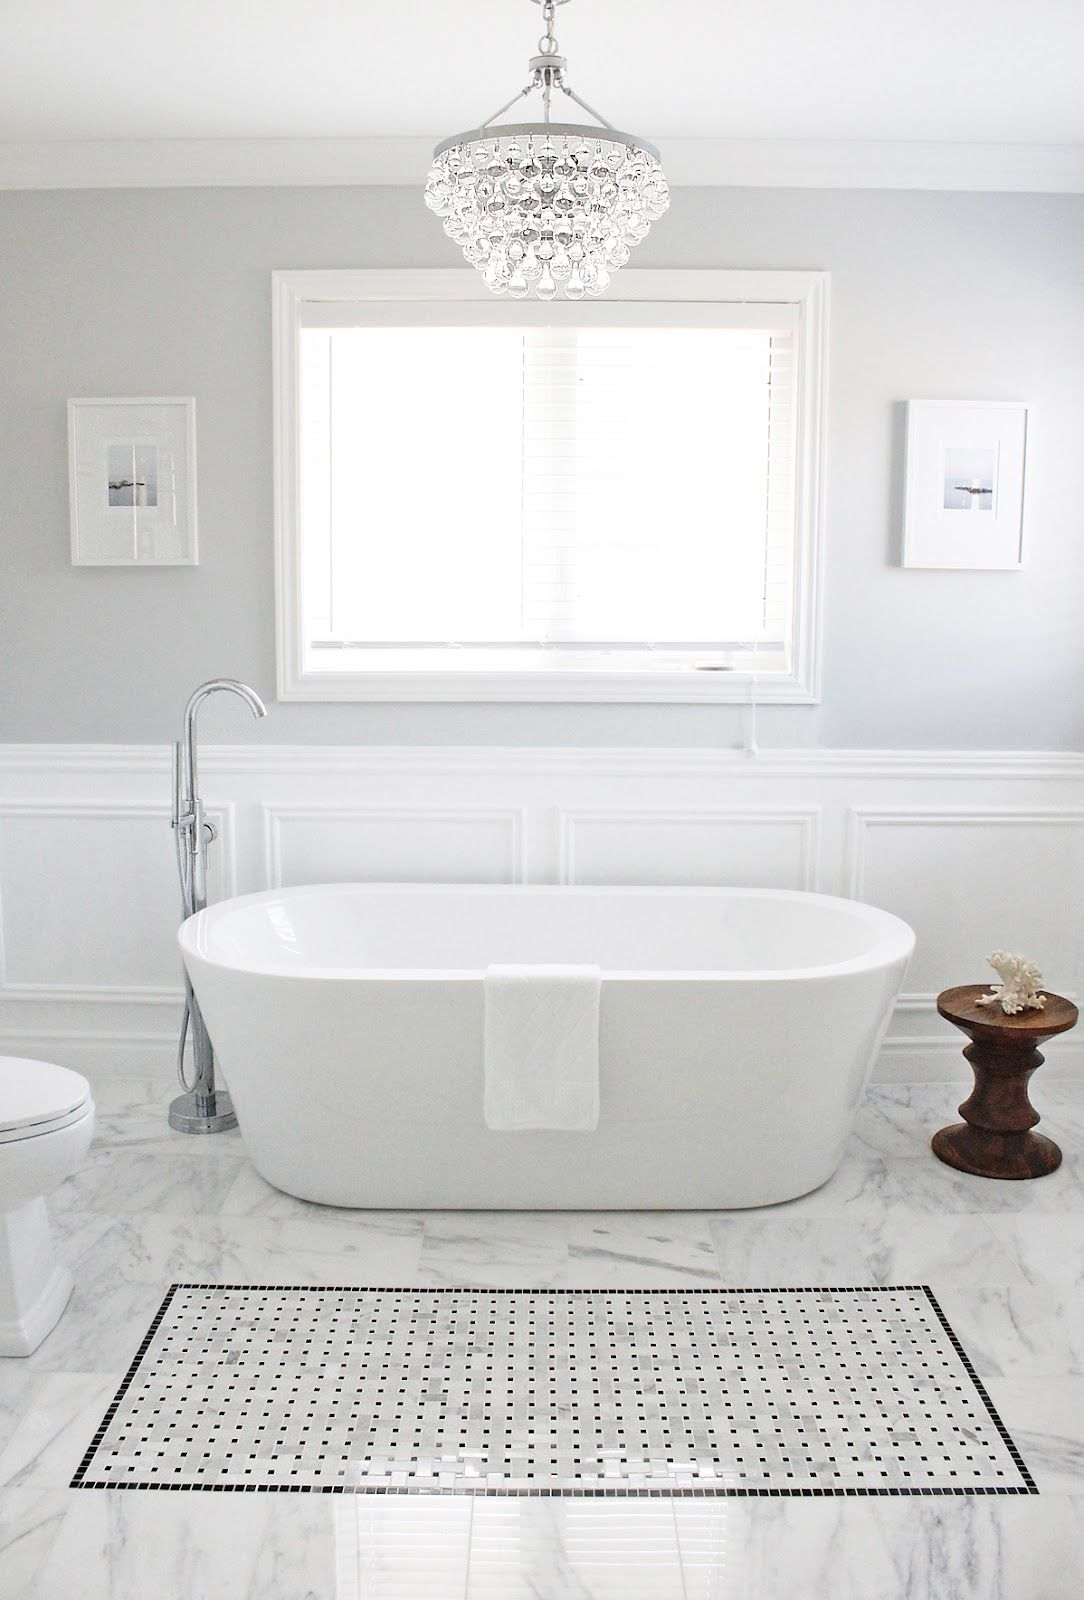 light gray paint colorsValspar Polar Star Light Gray Bathroom Paint Color  I am thinking